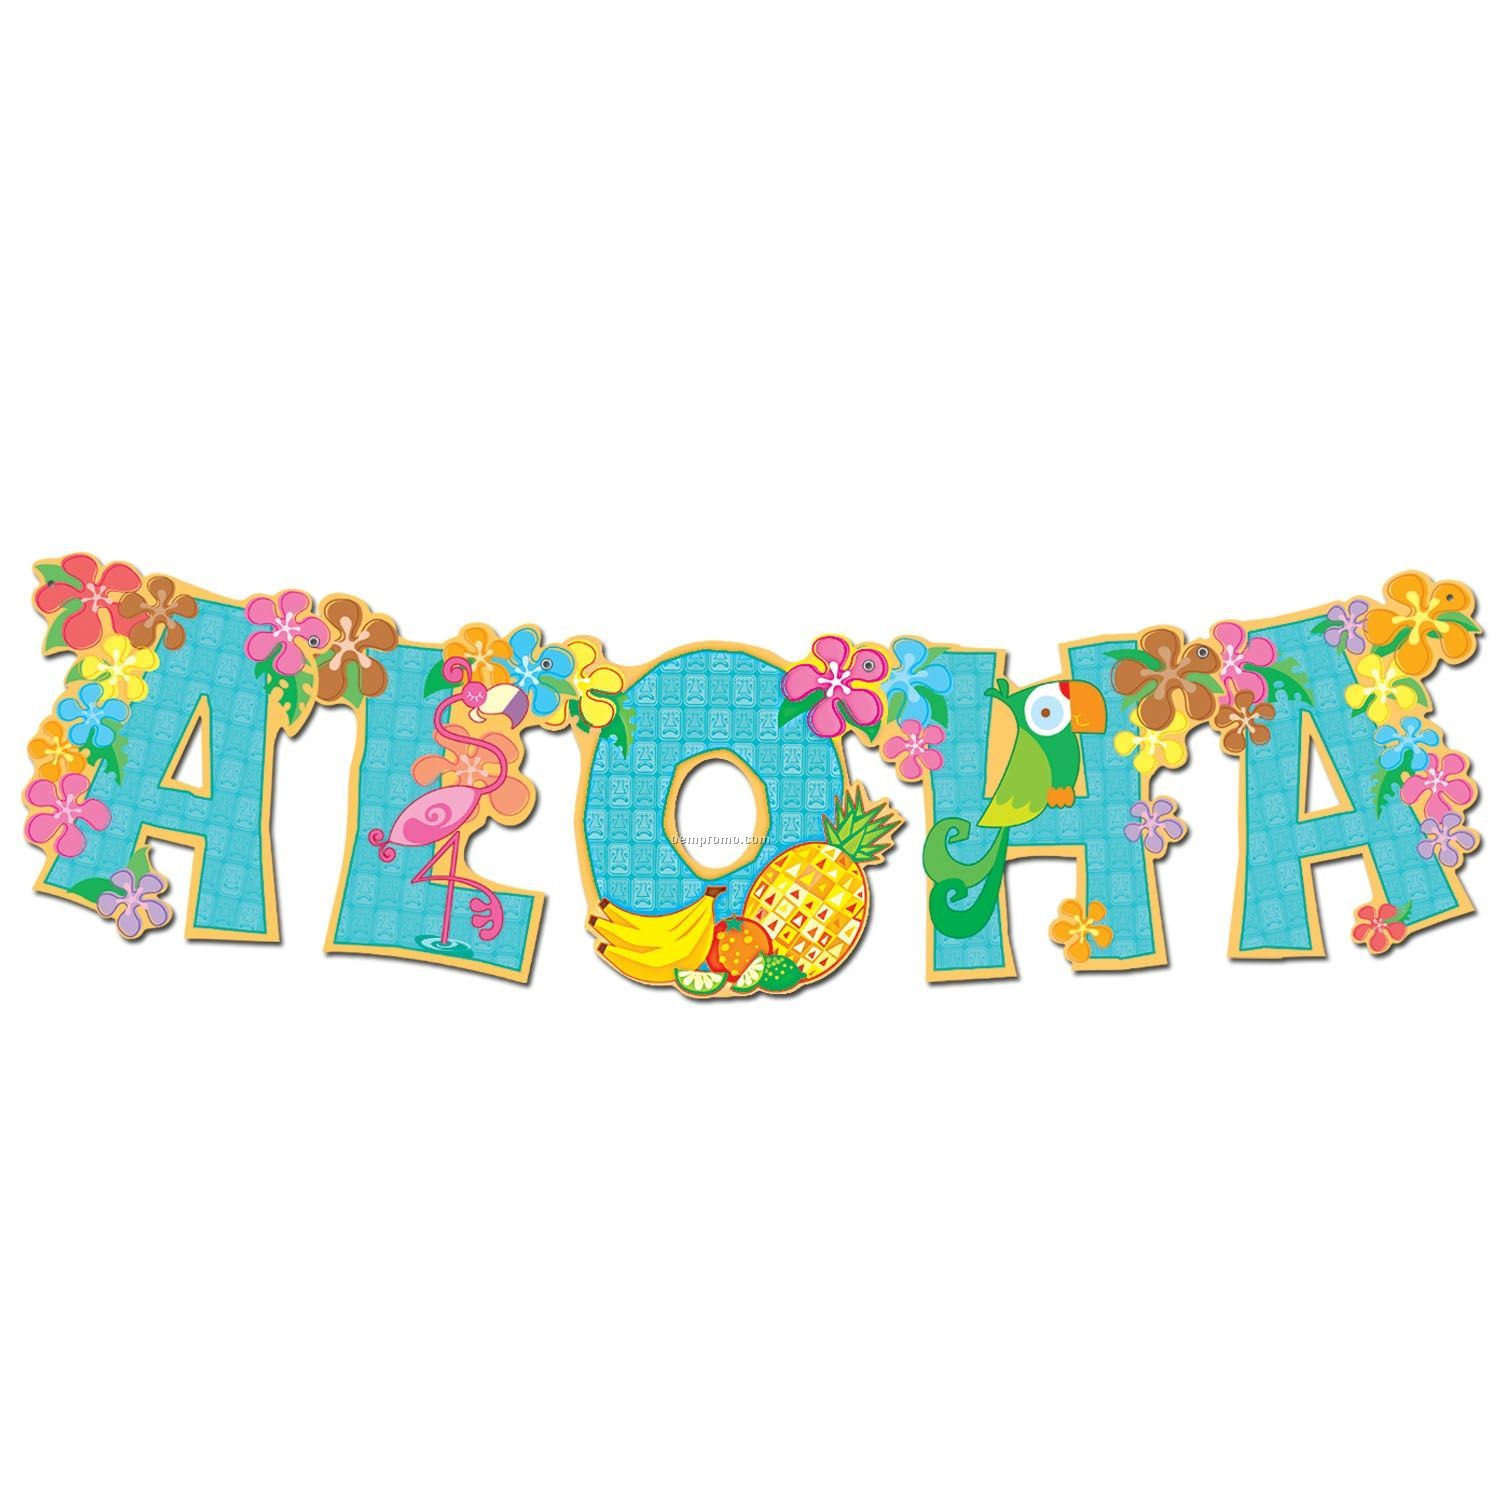 Aloha baby clipart picture transparent Luau Images Clipart   Free download best Luau Images Clipart on ... picture transparent